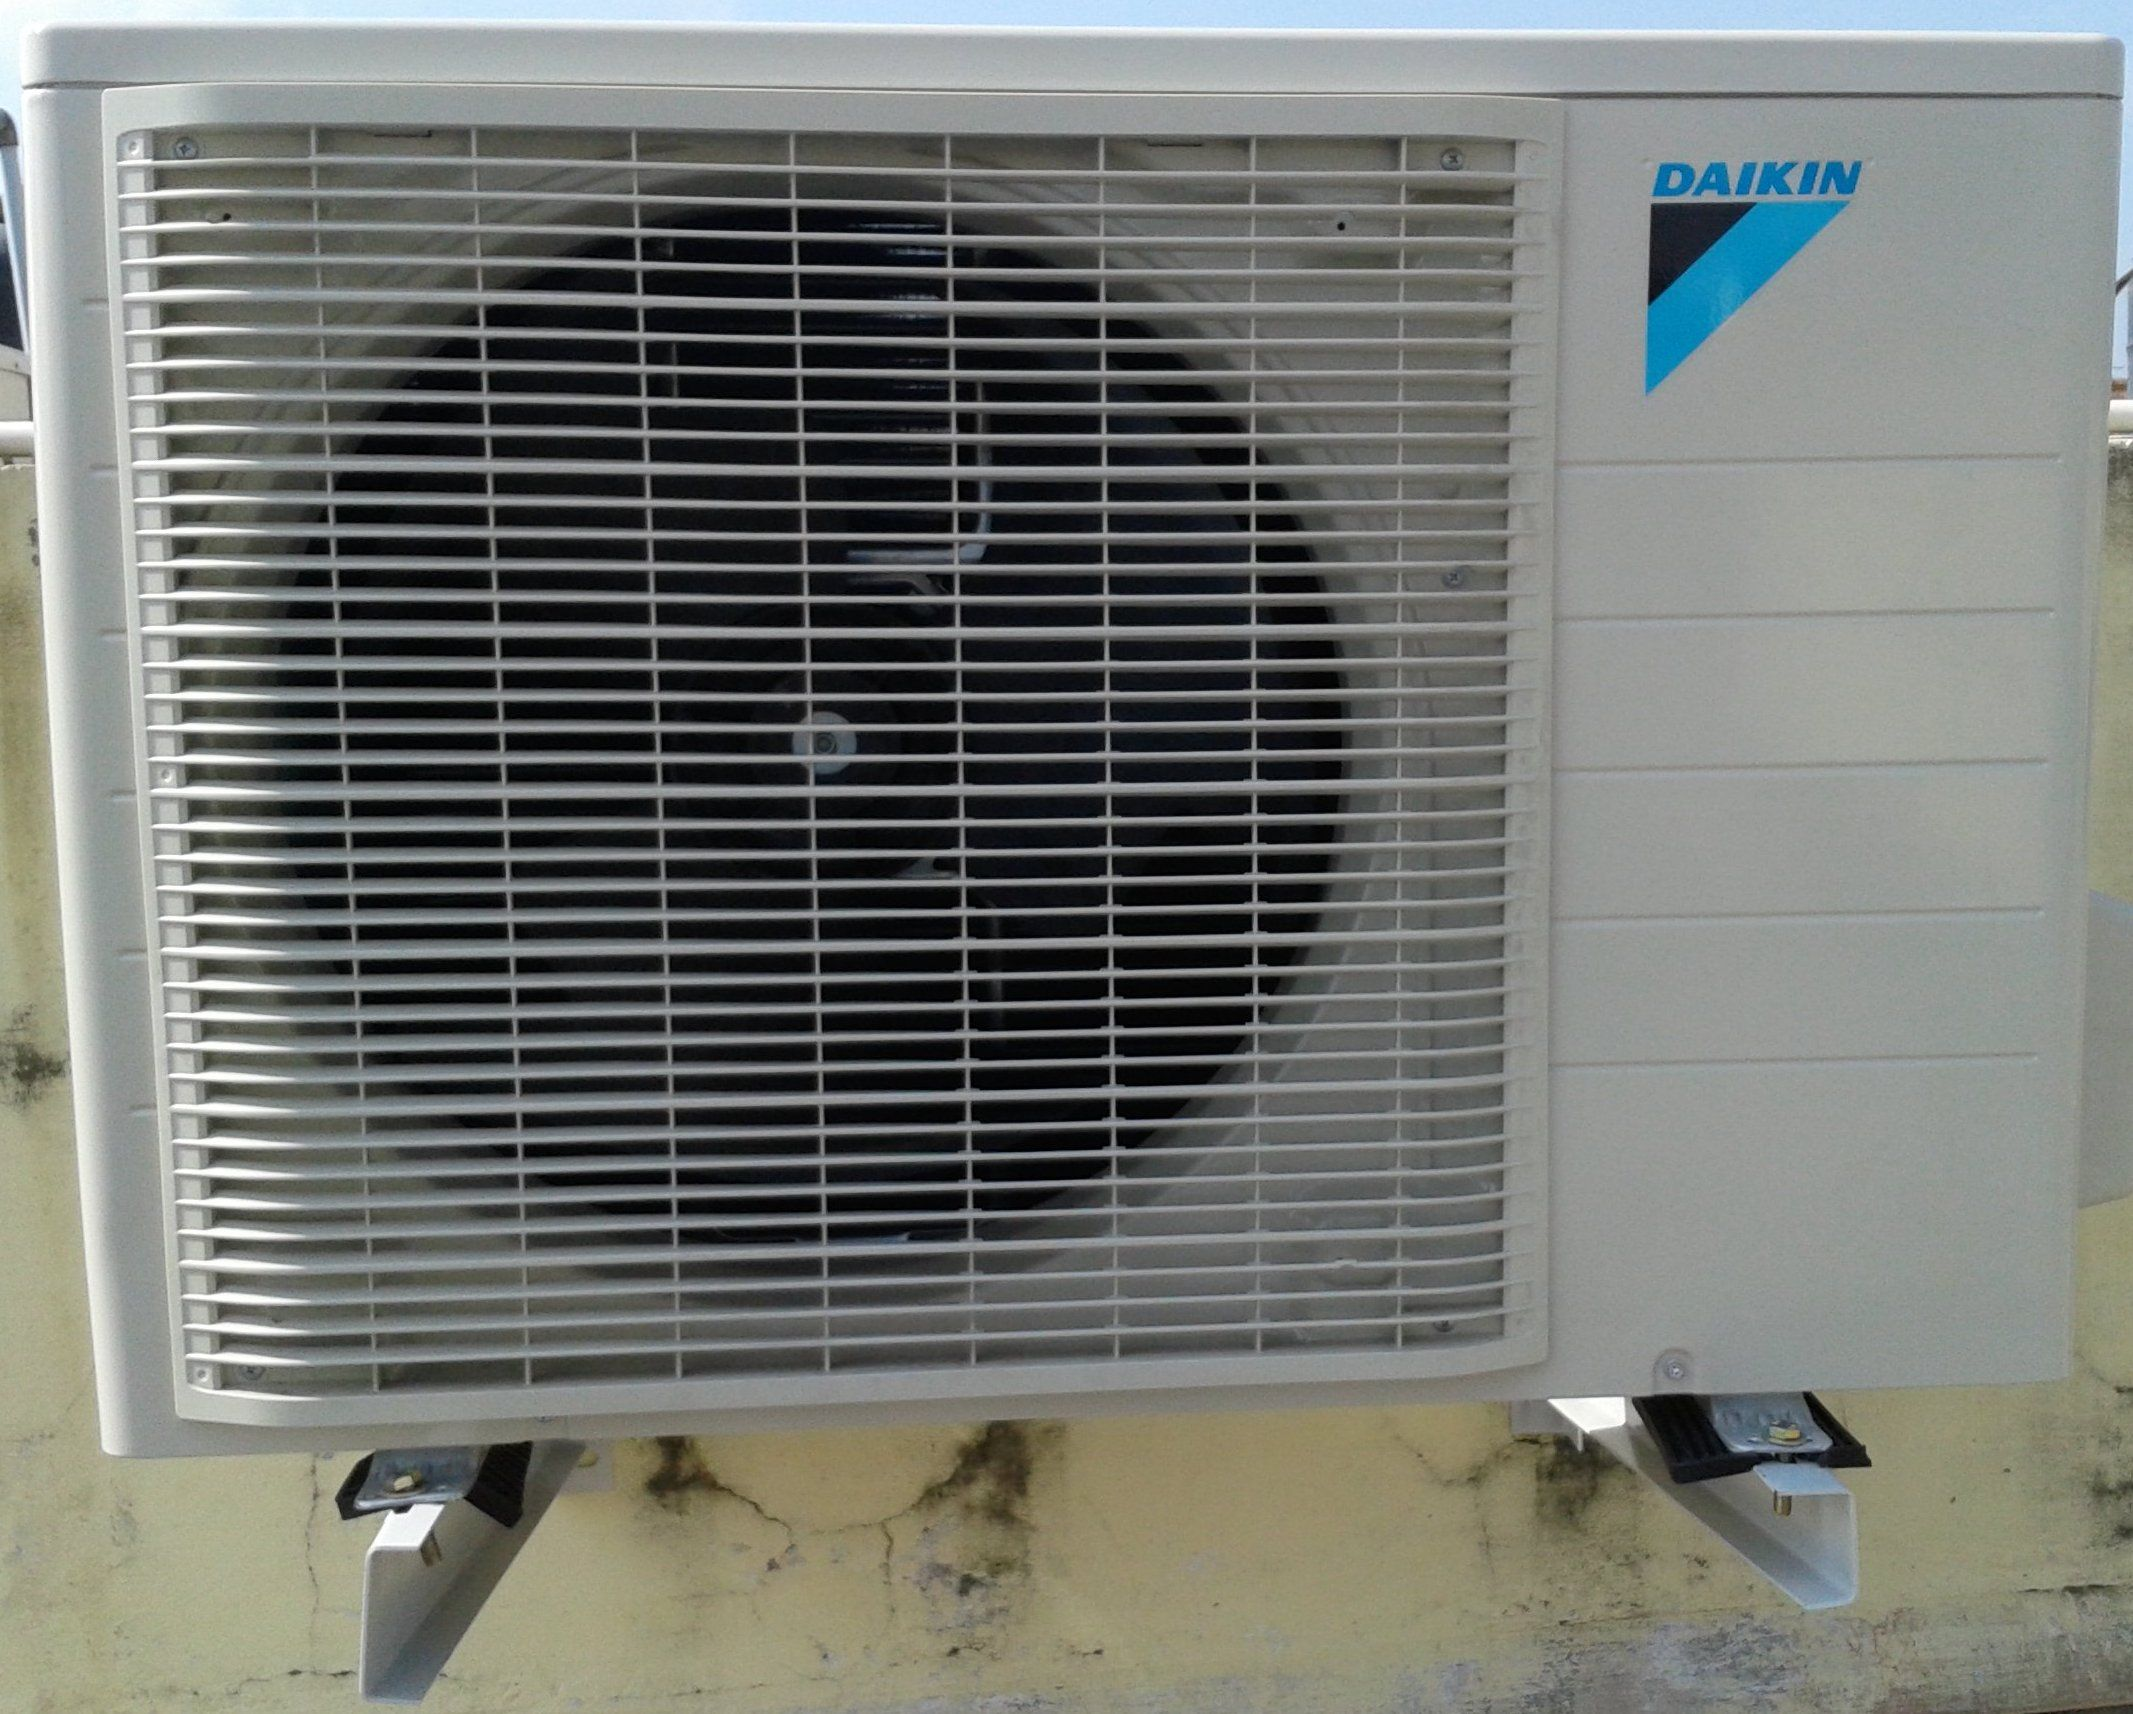 Air conditioning fan noisy? Maybe it's time. Air